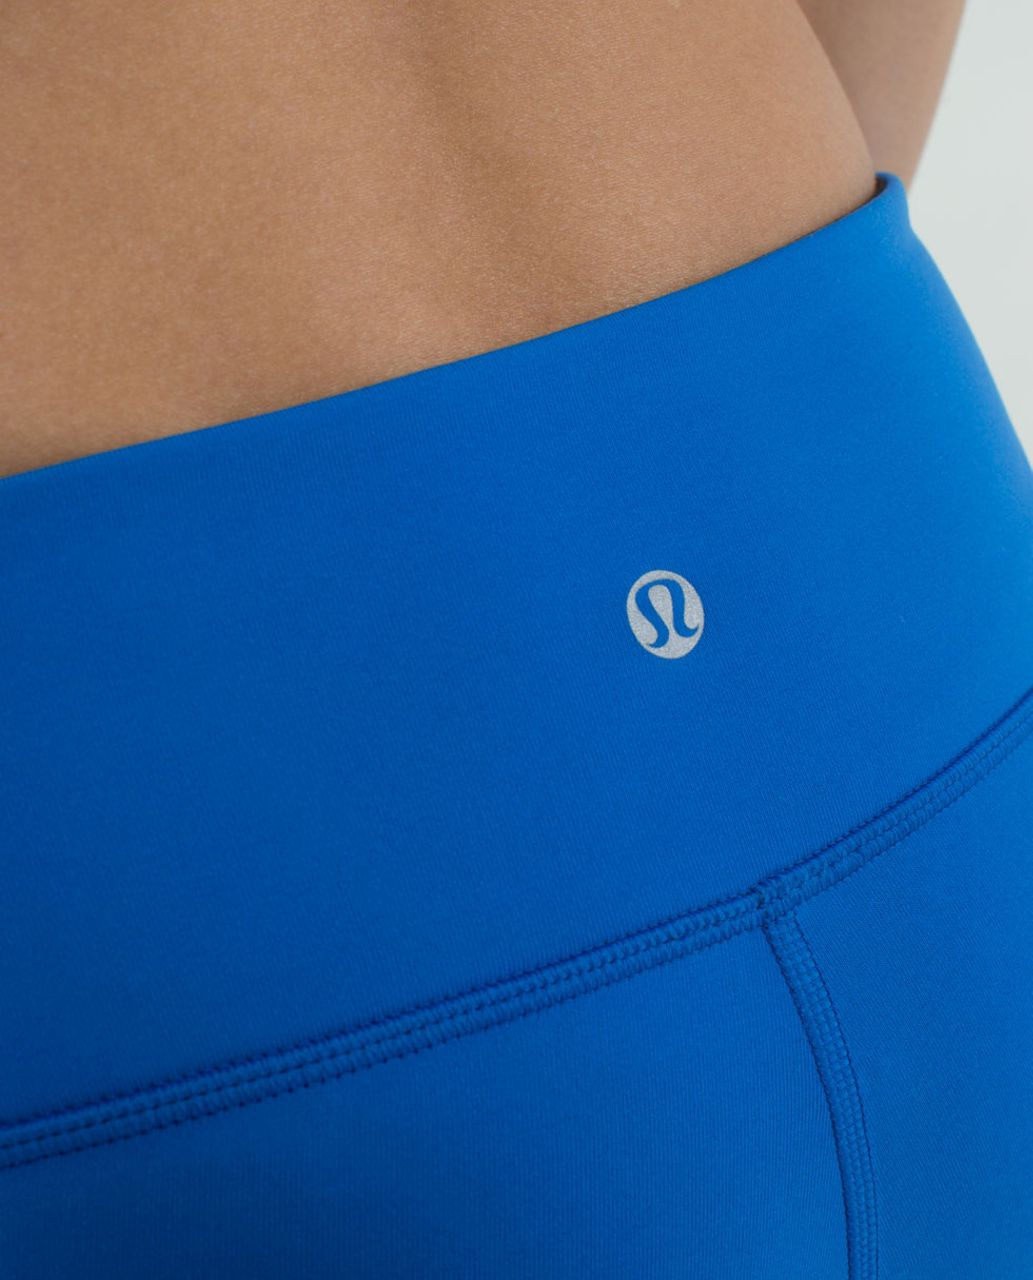 Lululemon Wunder Under Crop *Reversible - Black / Baroque Blue